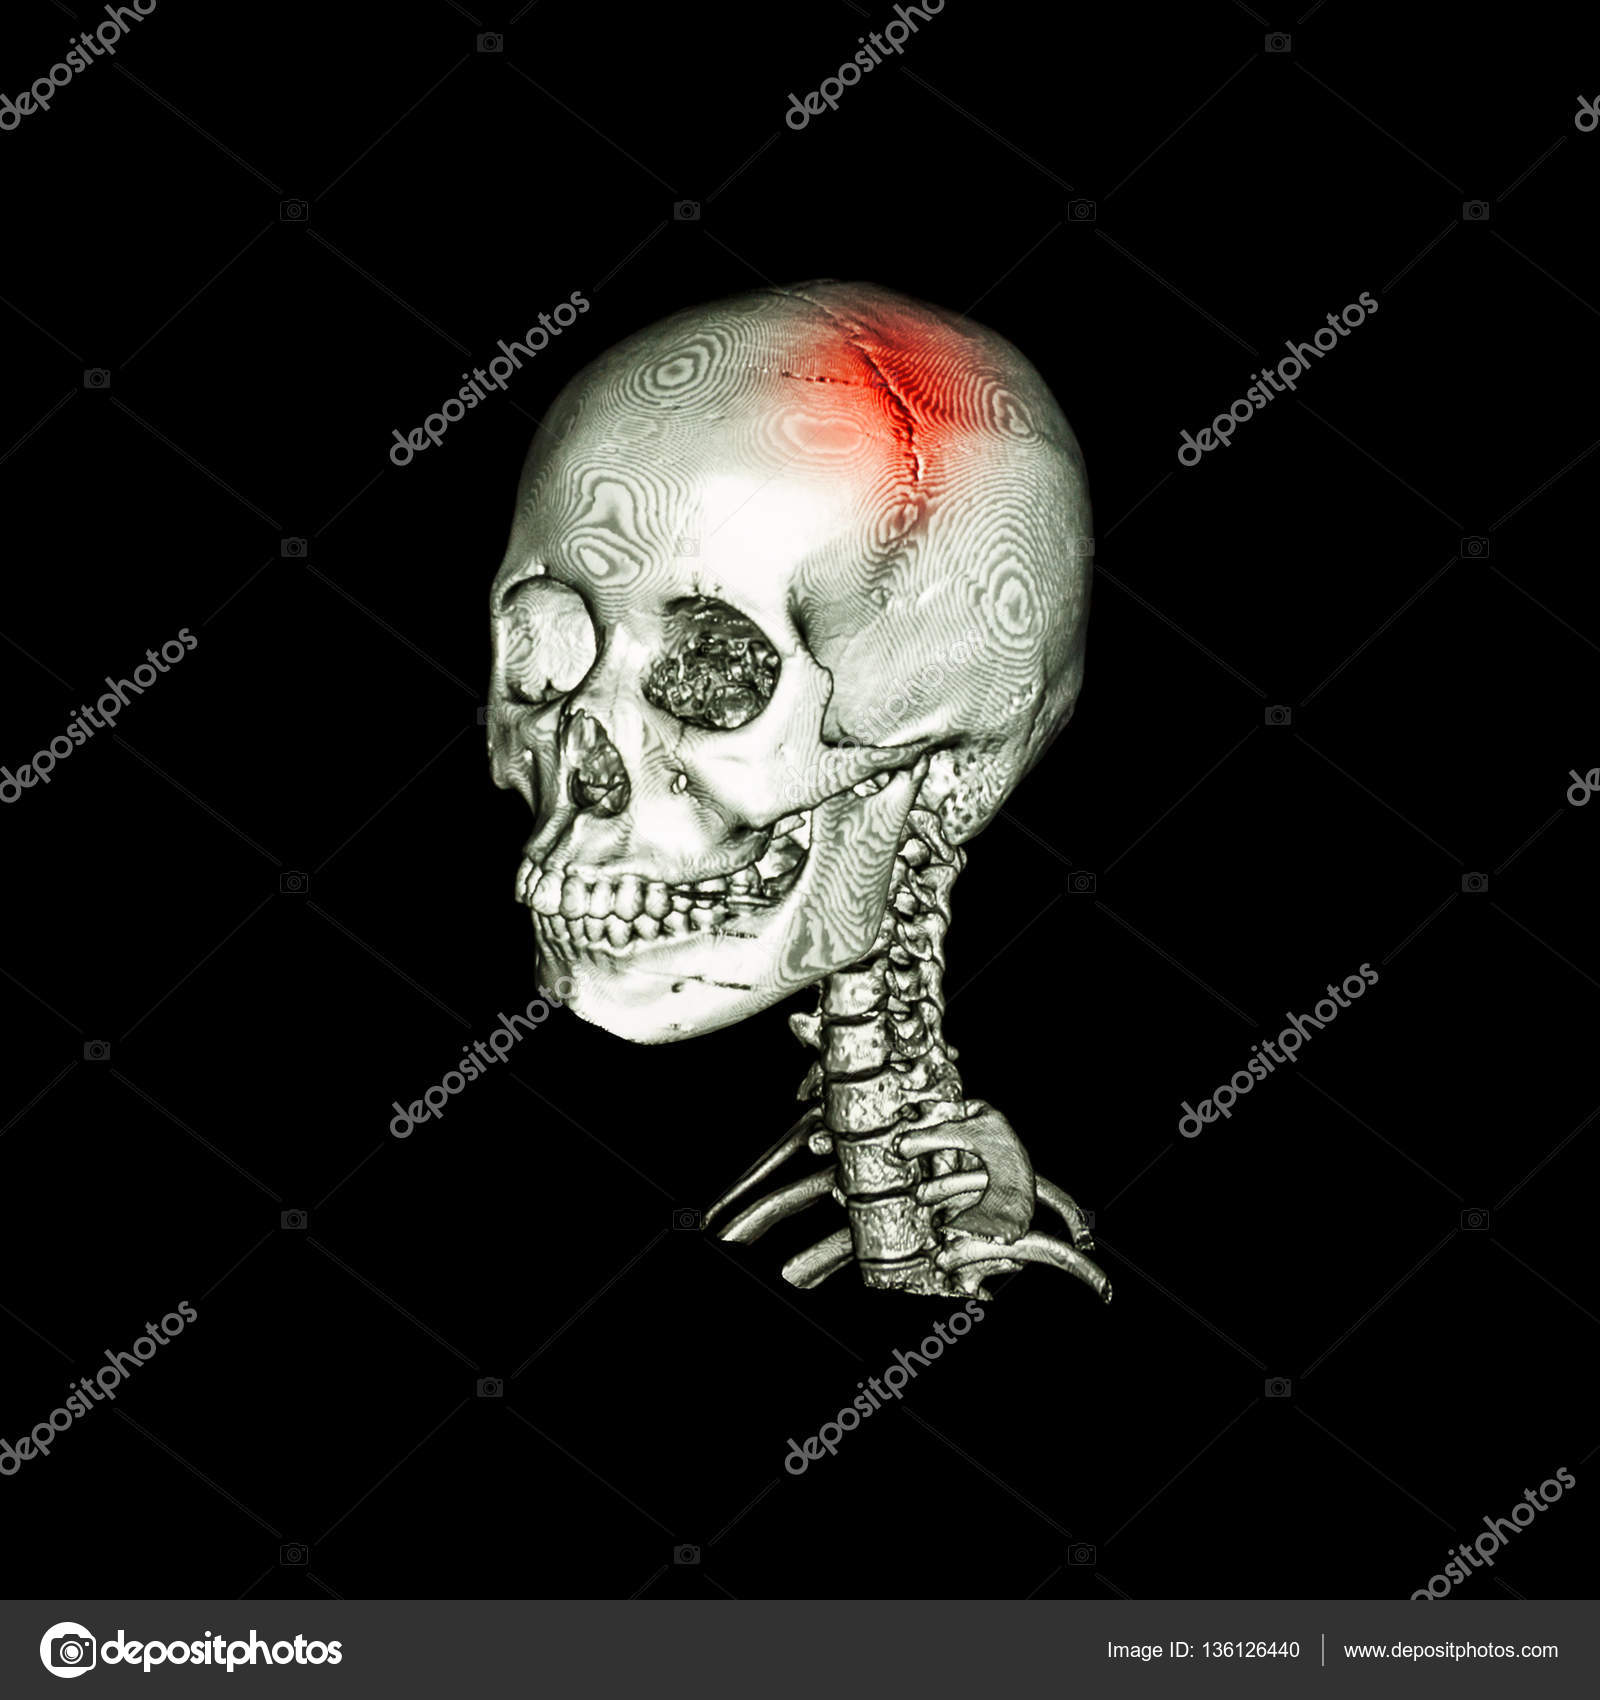 Stroke Ct Scan With 3d Image Of Human Skull And Cervical Spine